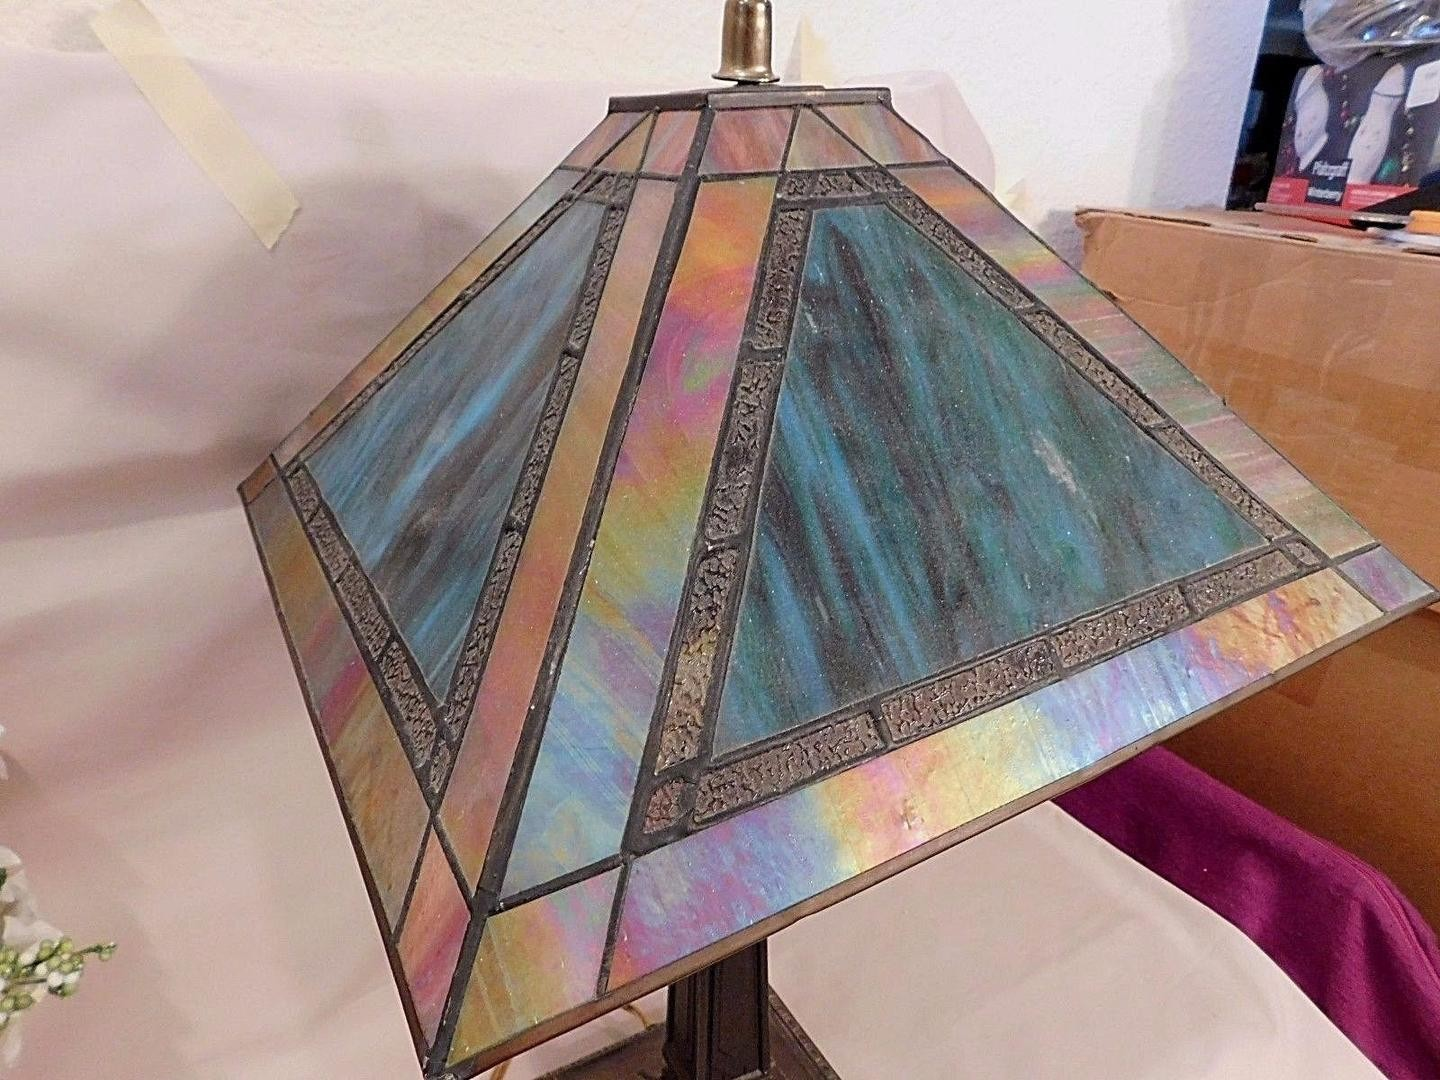 dale tiffany table lamp bronze base turquoise slag iridescent accent lamps next unique home decor modern teak outdoor furniture bathroom ideas side designs shelf behind couch